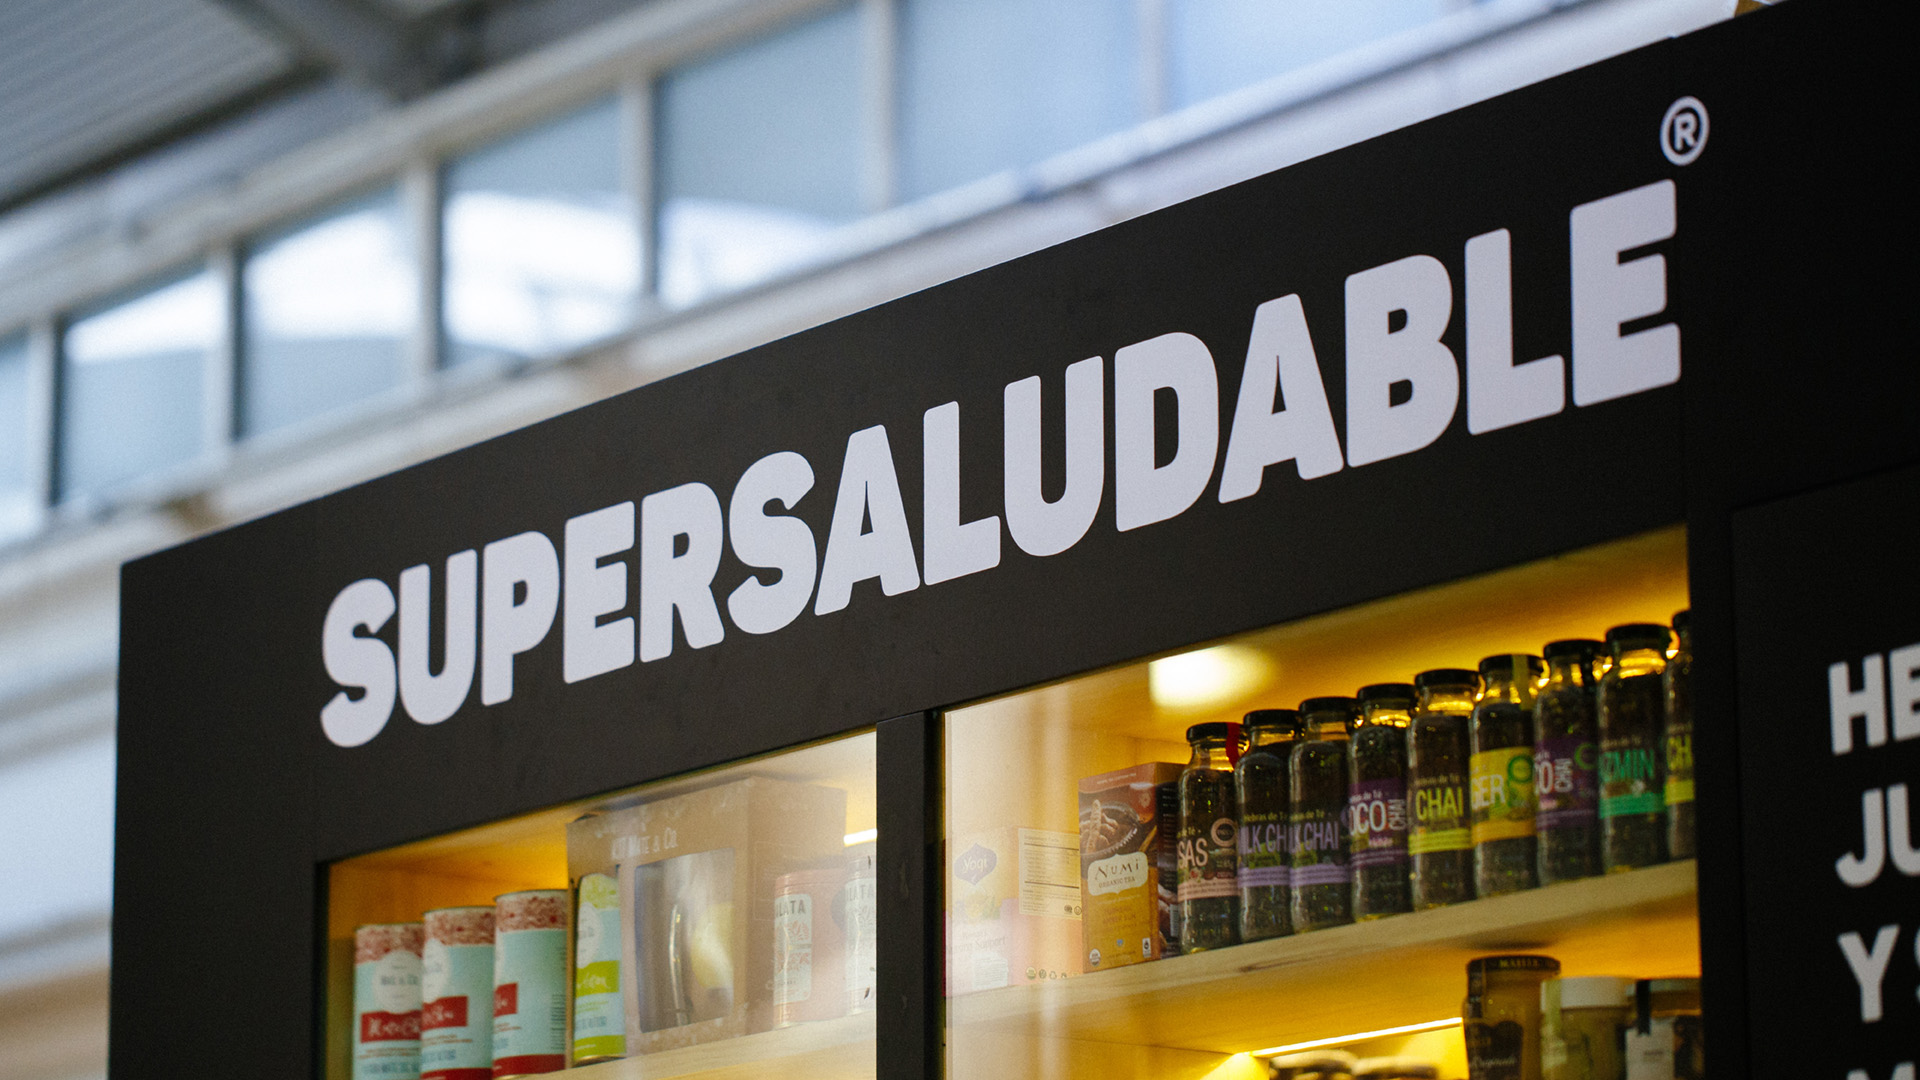 SUPERSALUDABLE-WEB-2019